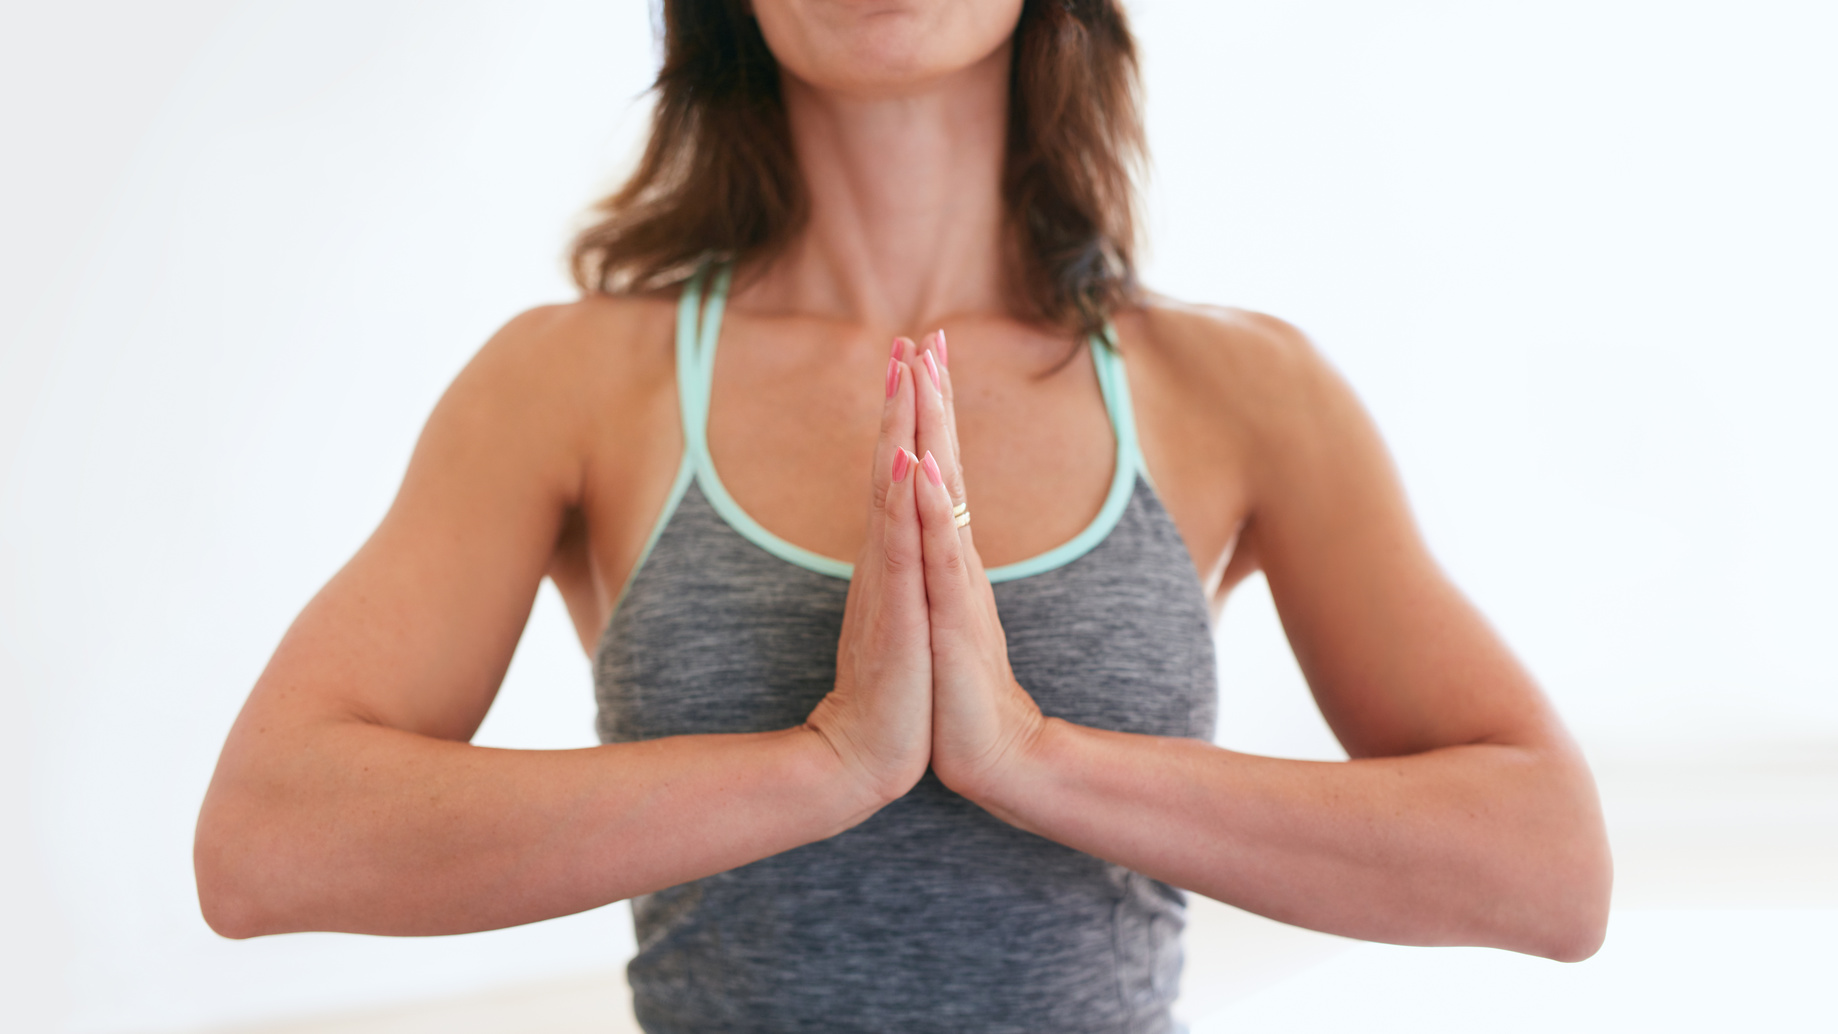 A woman in prayer position (Anjali Mudra) in order to stretch and strengthen weak wrists in preparation for yoga